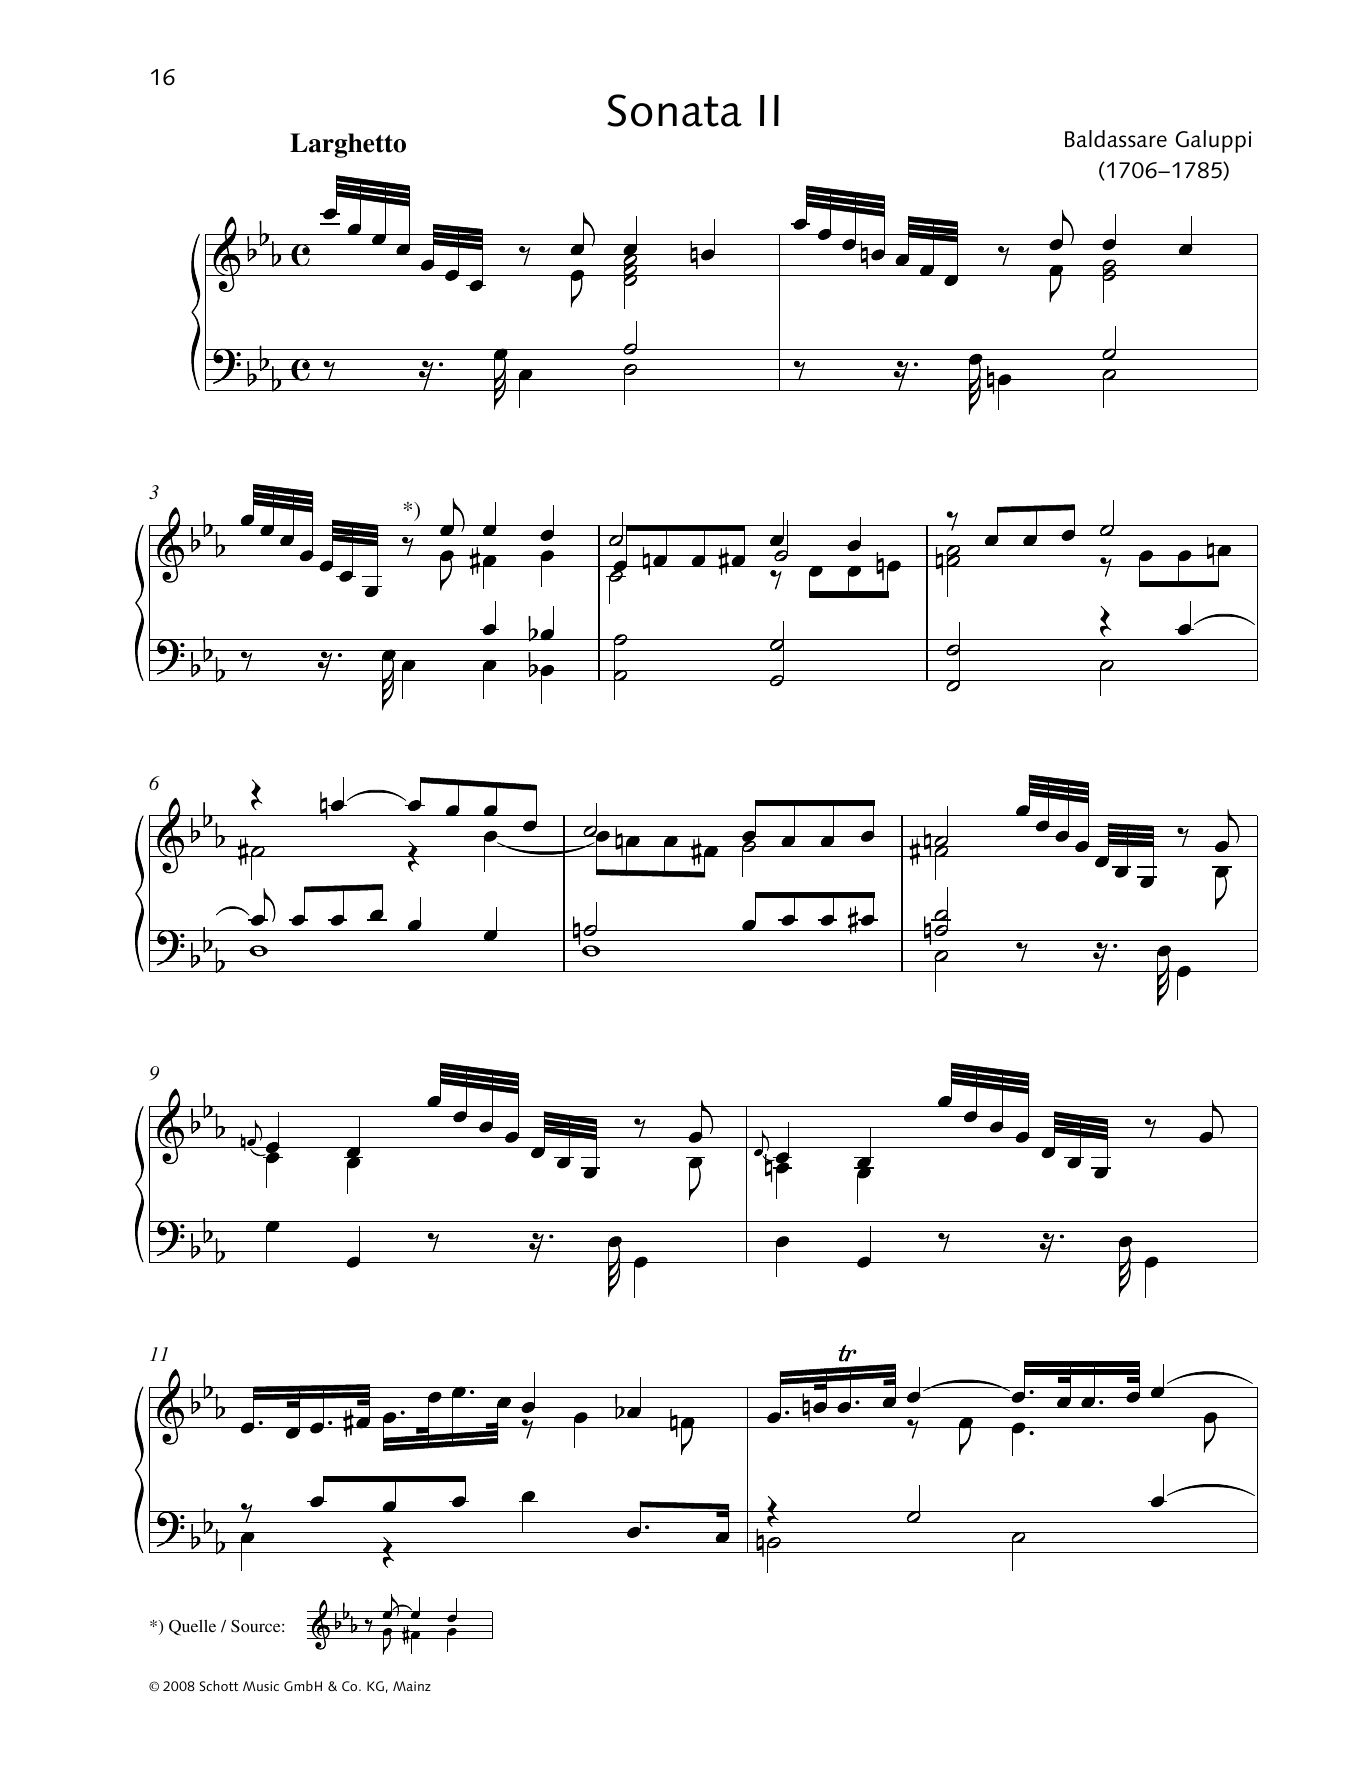 Sonata II C minor Sheet Music